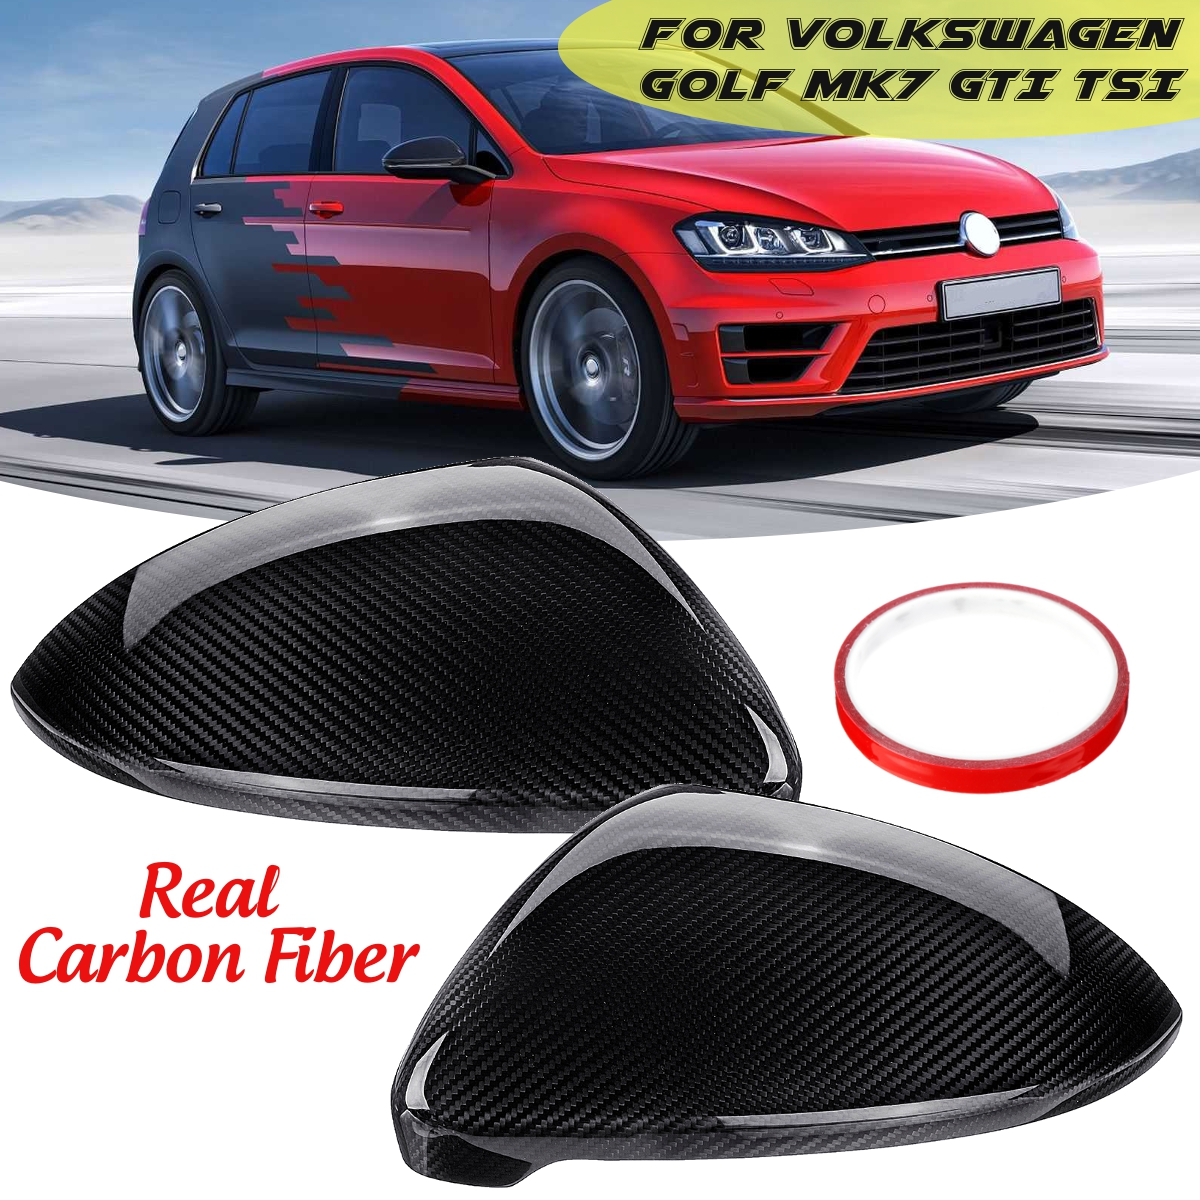 Pair Real Carbon Fiber Car Side Rearview Mirror Cover Caps Black for VW for Volkswagen Golf MK7 GTI TSI 2014 15-2017 Car Styling for volkswagen vw golf7 mk7 carbon fiber rear side view caps mirror cover car replacement